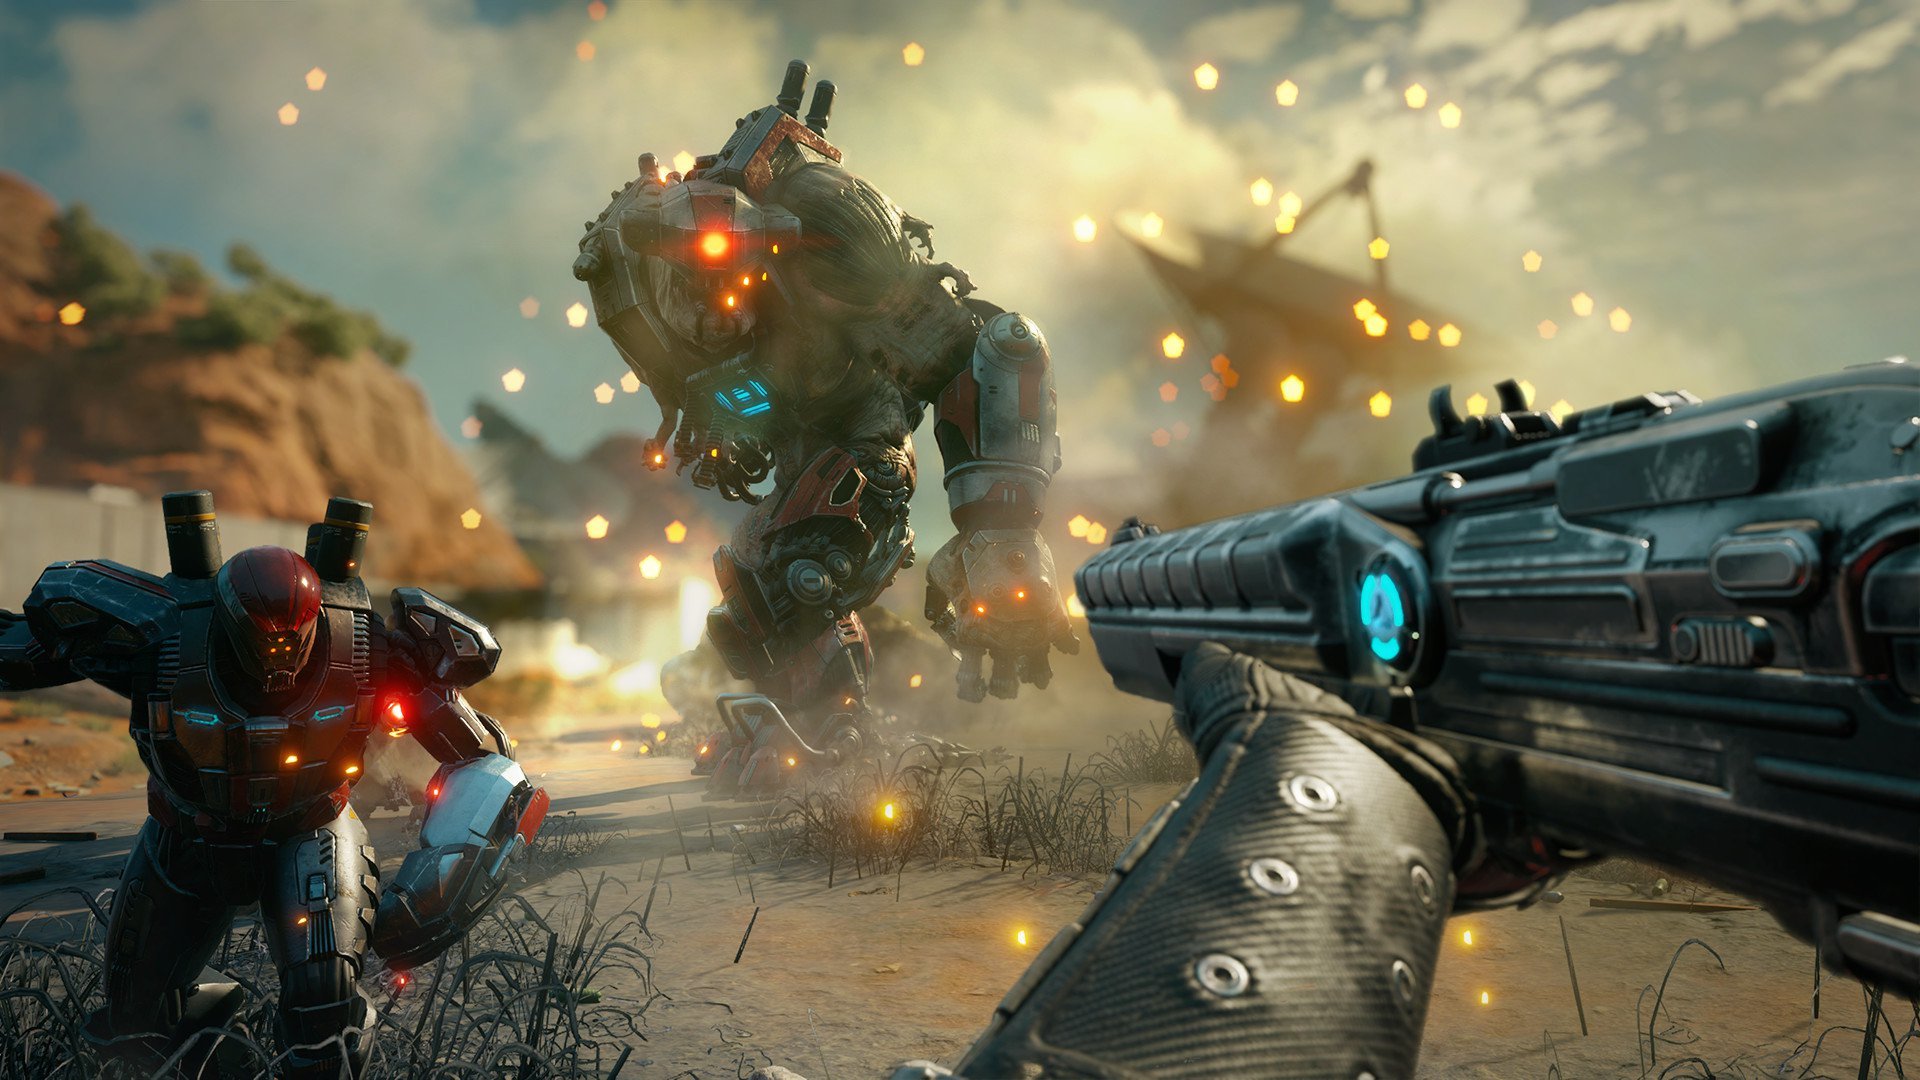 RAGE 2 Cheats - List of Cheats and How to Unlock Them